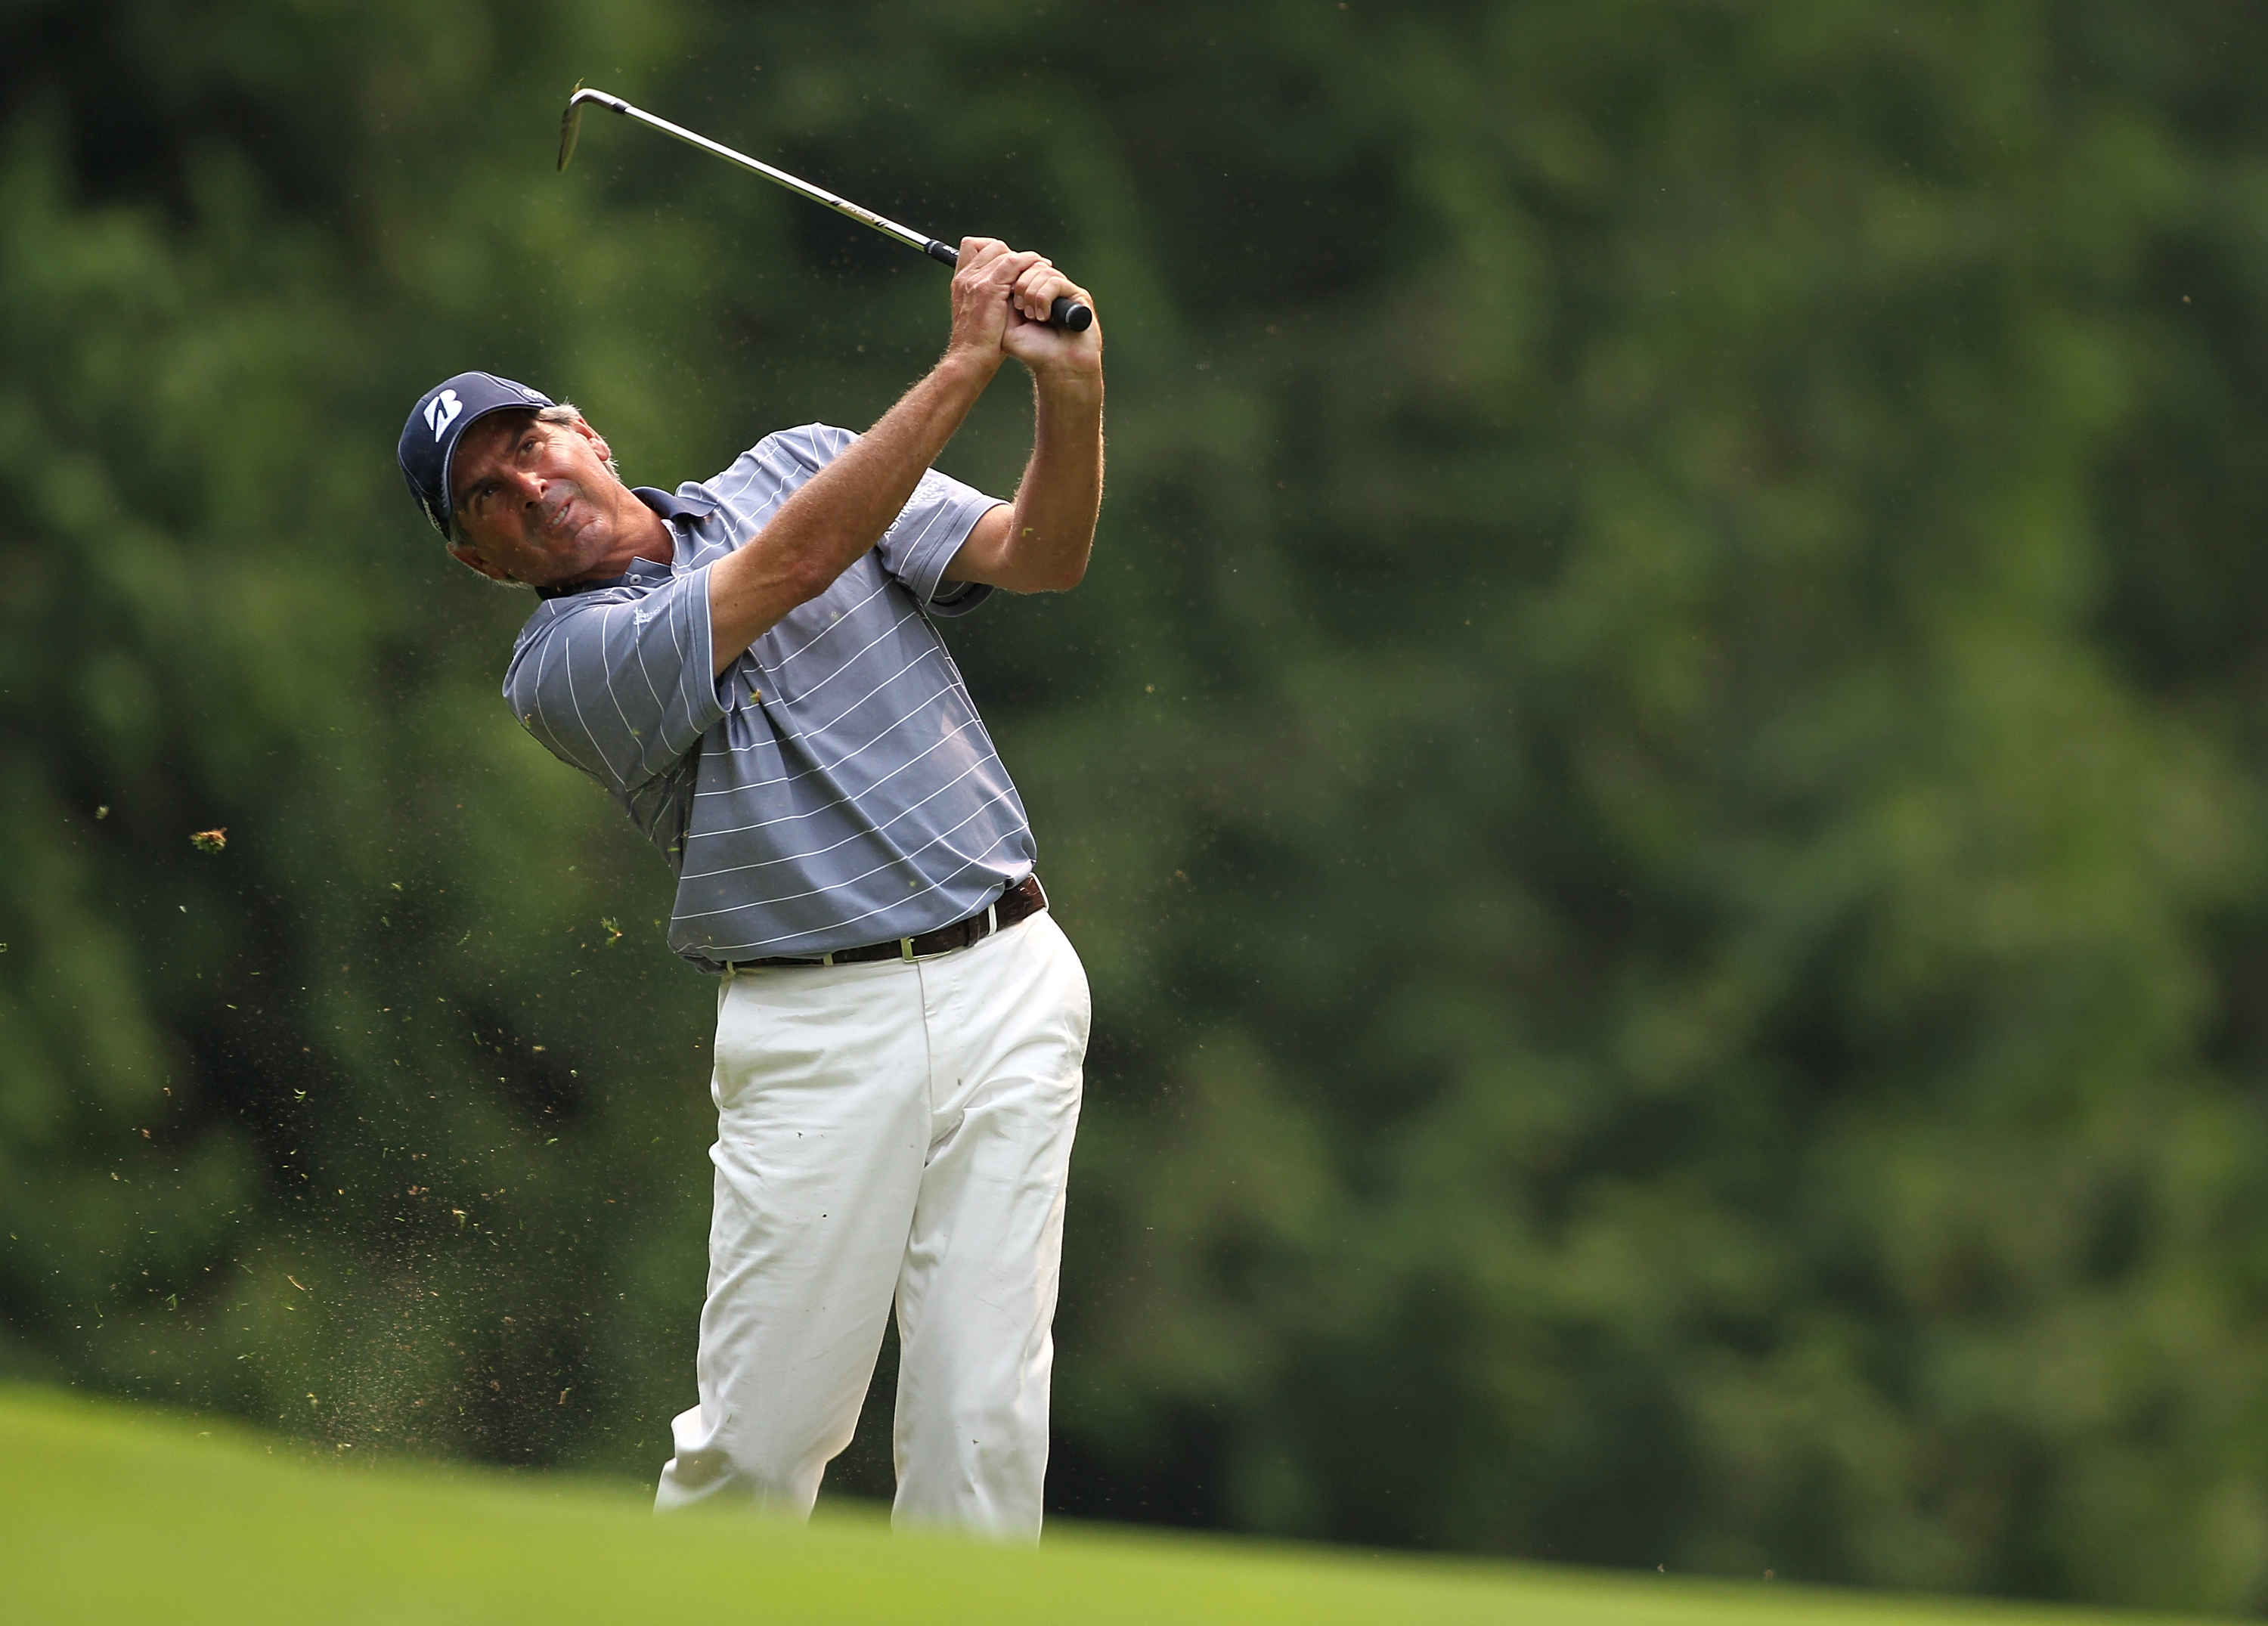 SAMMAMISH, WA - AUGUST 01:  Fred Couples hits his second shot on the 14th hole during the final round of the U.S. Senior Open Championship on August 1, 2010 at Sahalee Country Club in Sammamish, Washington..  (Photo by Jonathan Ferrey/Getty Images)